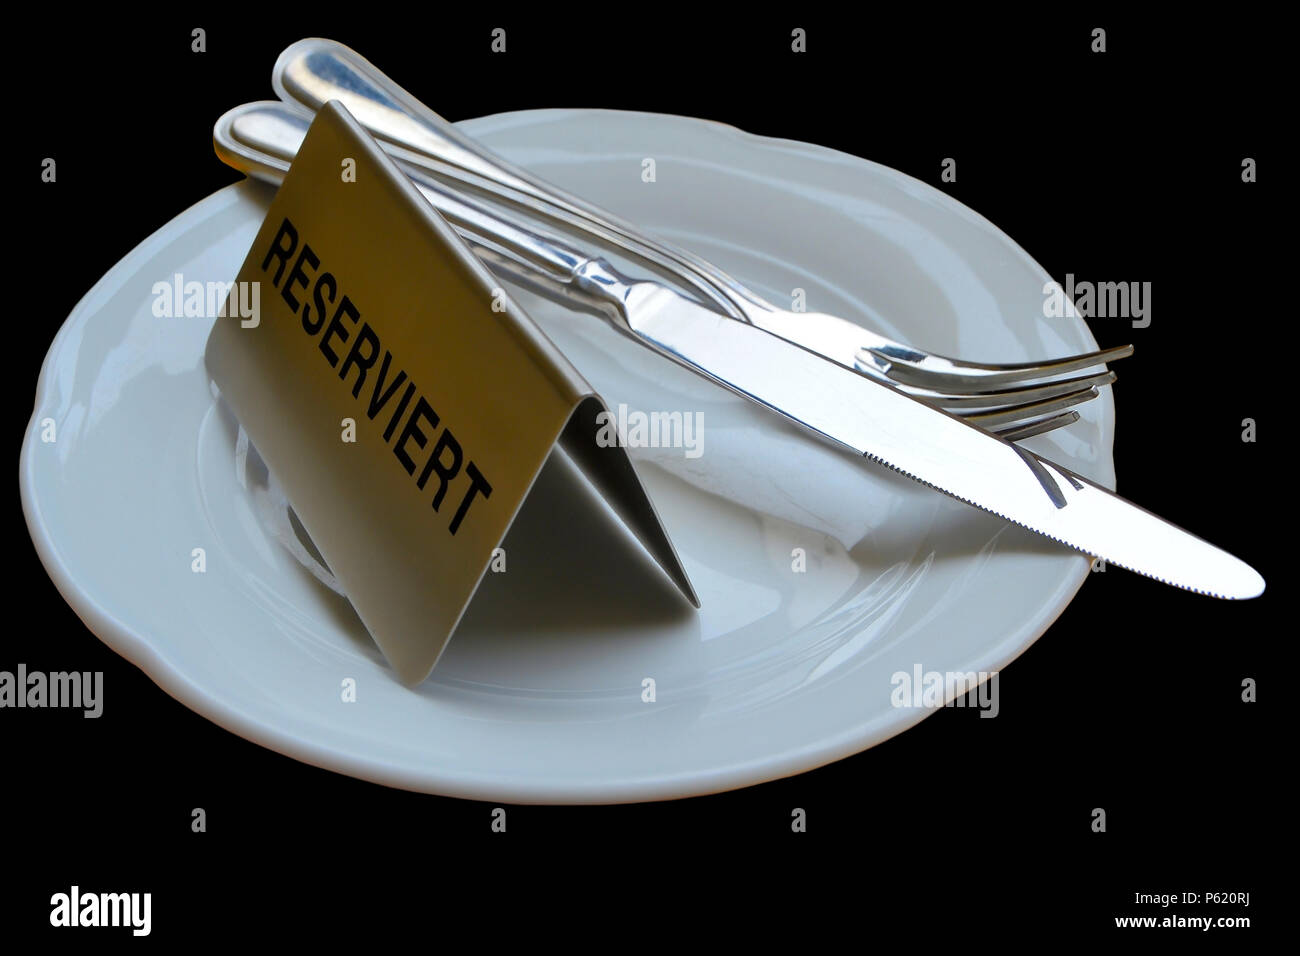 reserved table in a restaurant - Stock Image